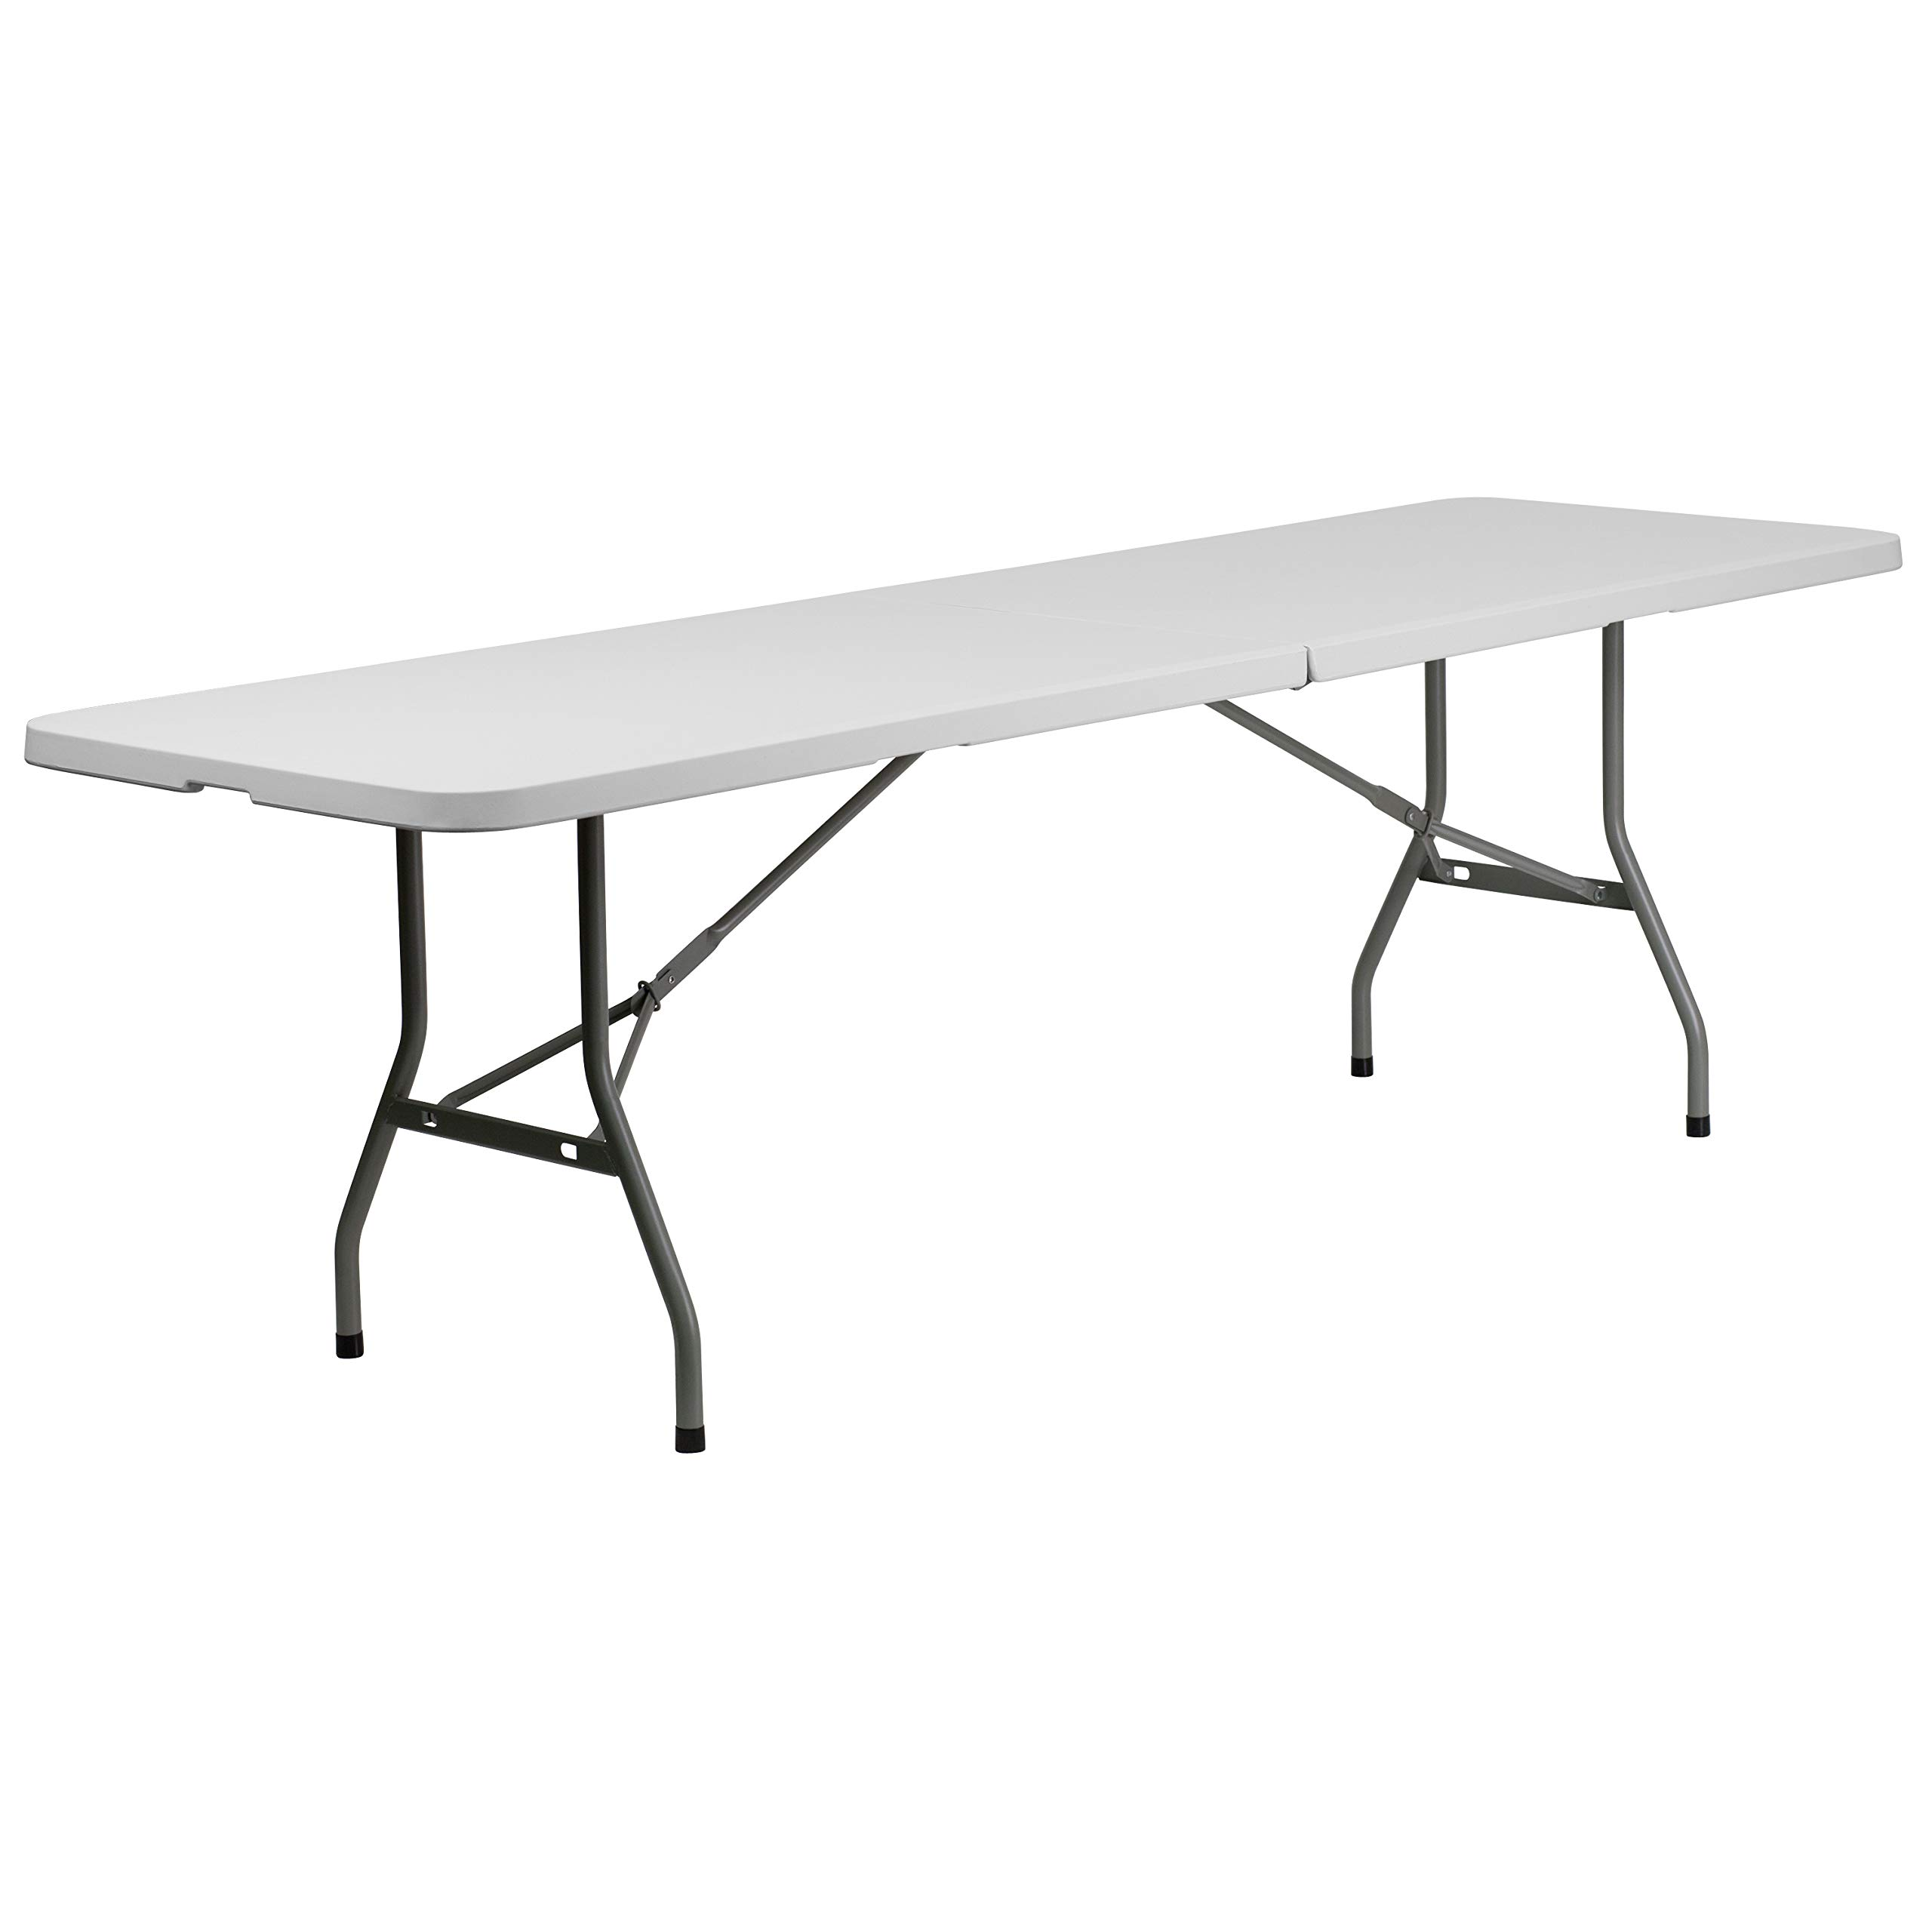 Flash Furniture 8-Foot Bi-Fold Granite White Plastic Banquet and Event Folding Table with Carrying Handle by Flash Furniture